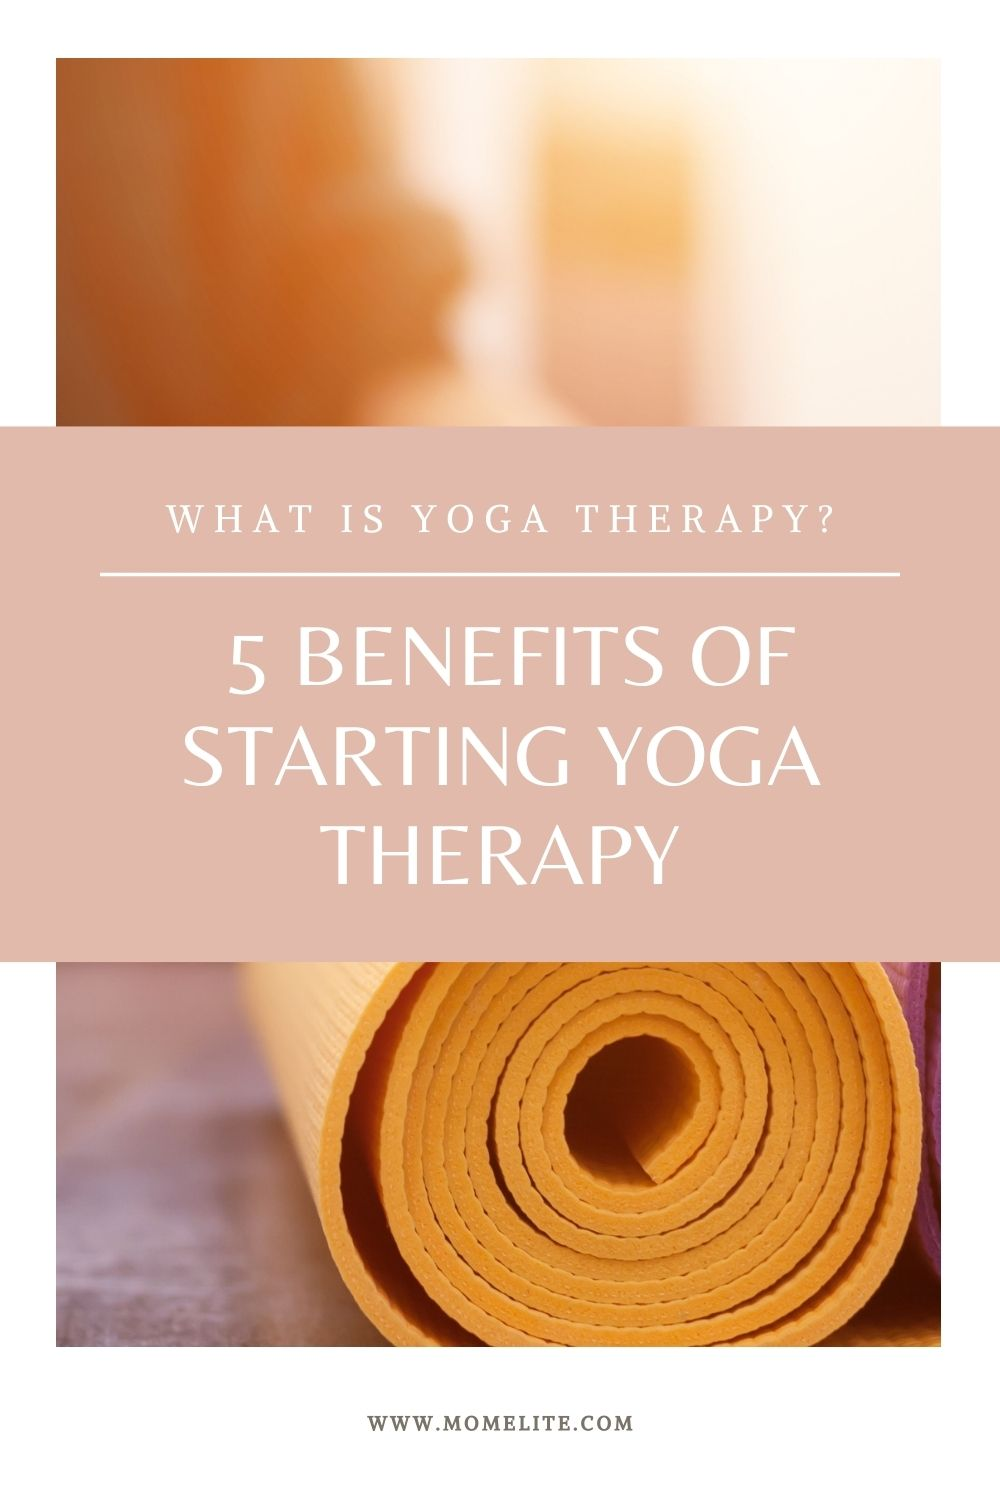 What Is Yoga Therapy? 5 Benefits of Starting Yoga Therapy